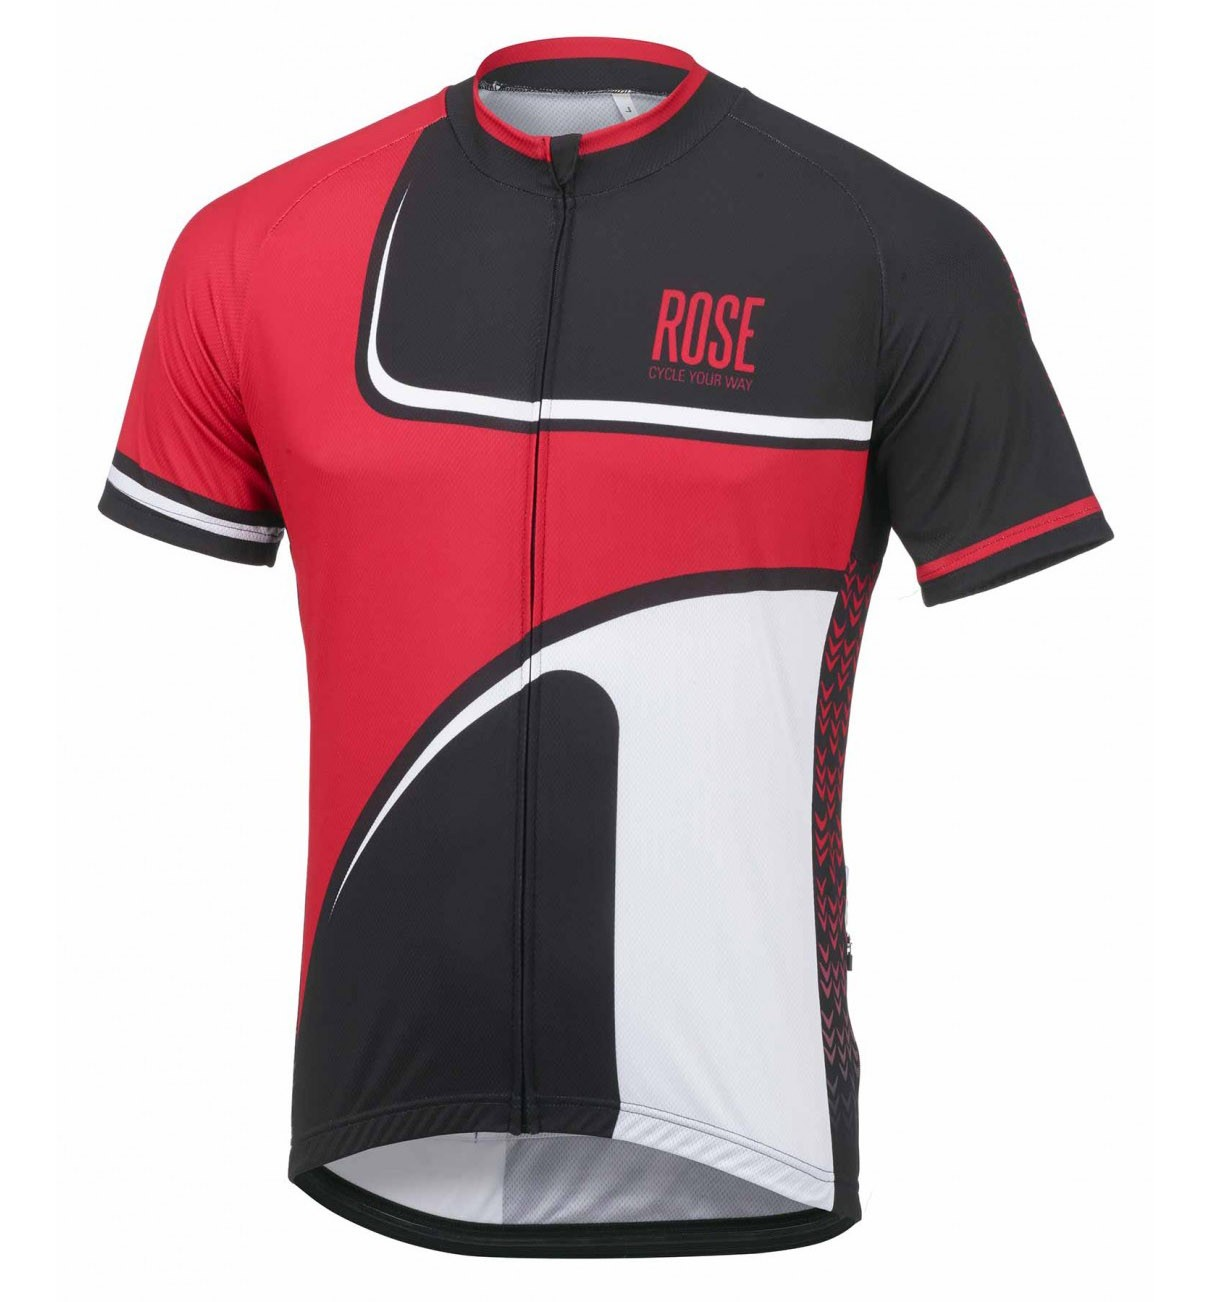 subaru jersey with 2016 Rose Retro Black Red Cycling Jersey on 2017 Team Giant Black Blue Cycling Jersey And Bib Shorts Set together with 2016 Sportful Selva Black Camouflage Cycling Jersey And Bib Shorts Set additionally 5 furthermore 205151 as well 2015 Team Iam Cycling Jersey And Bib Shorts.